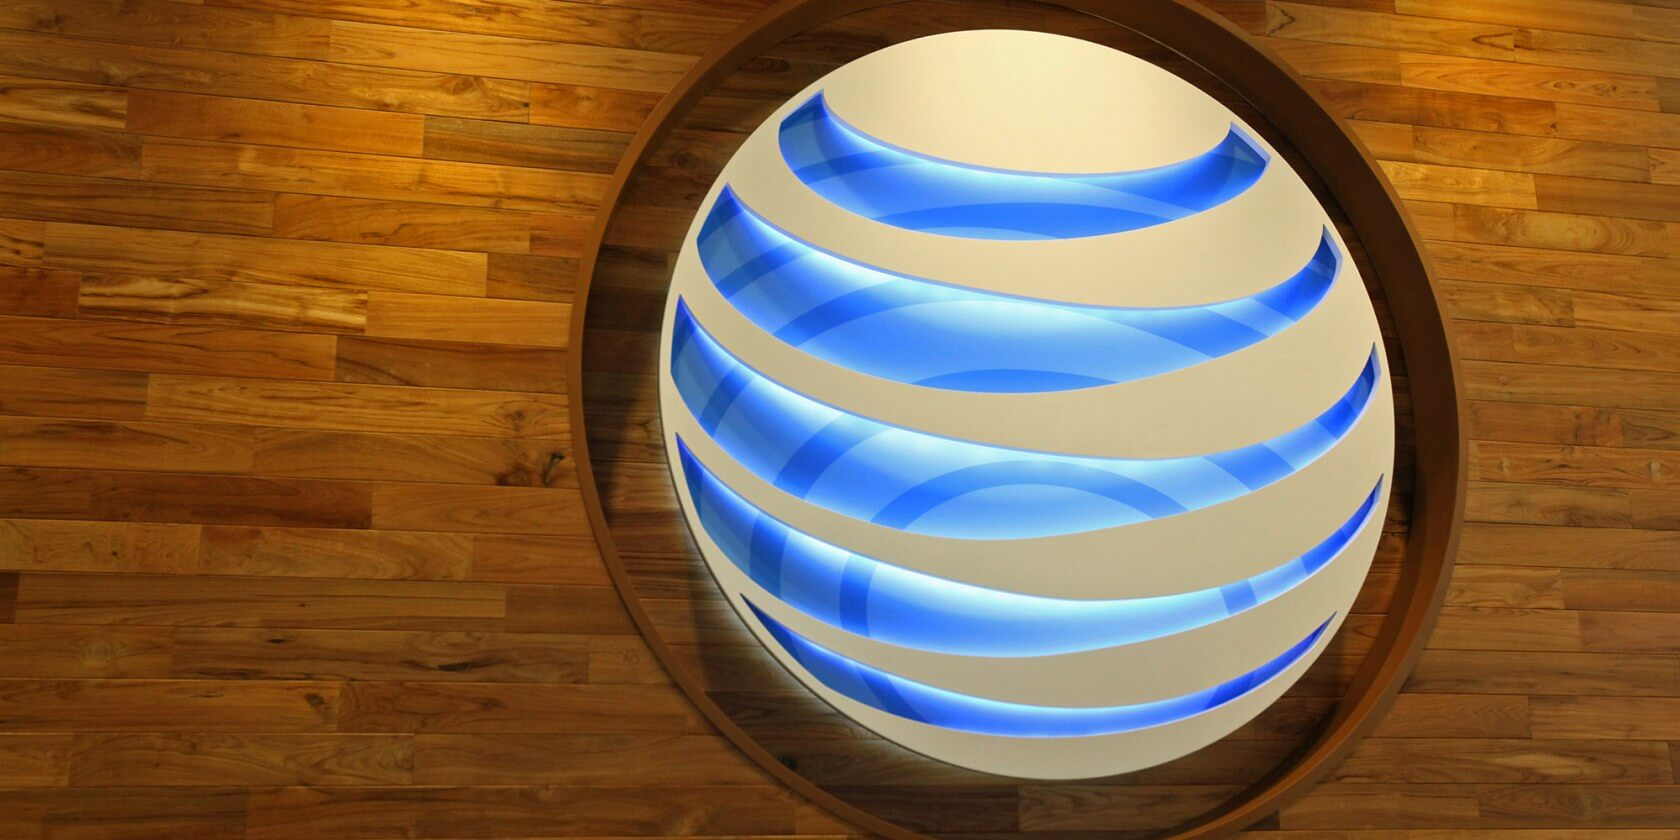 AT&T will sever ties with location aggregators as well